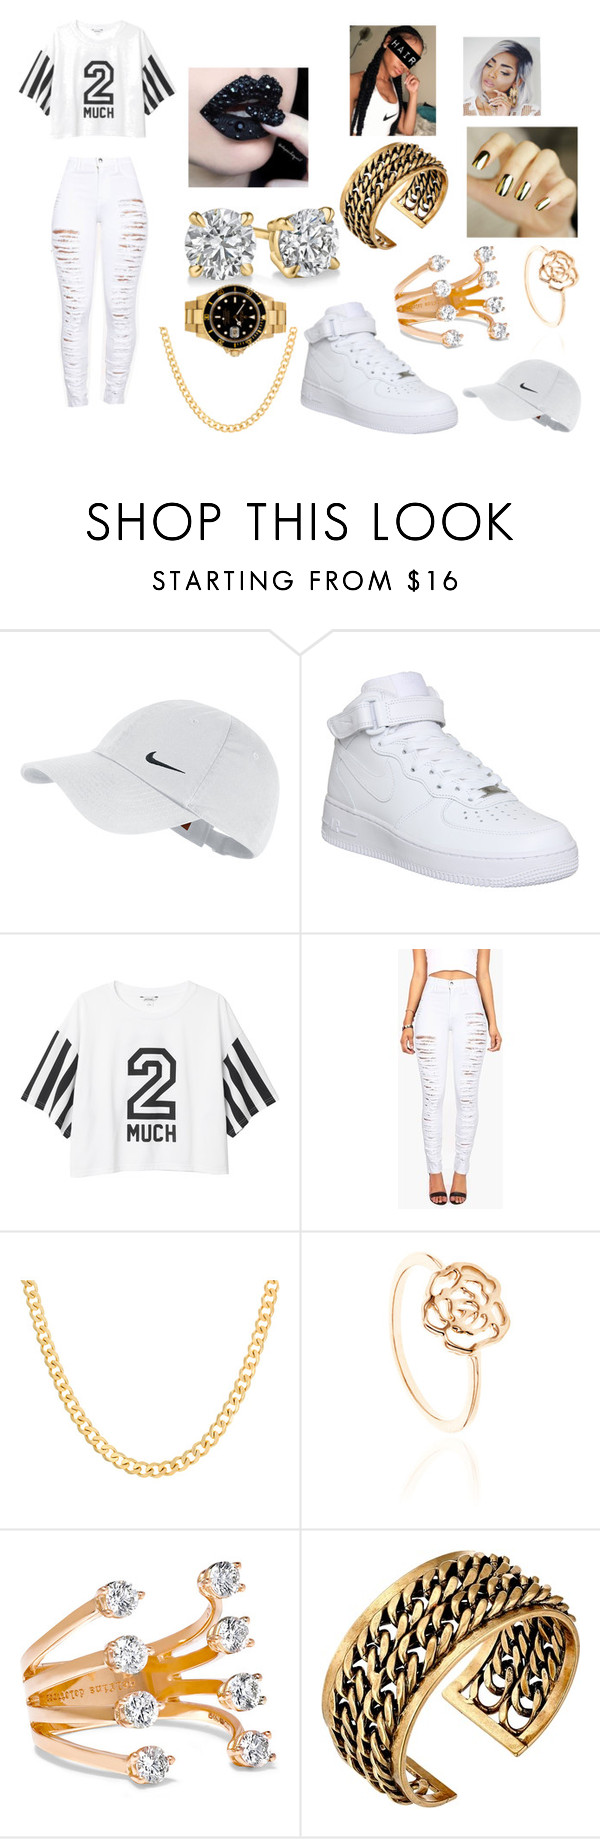 """#63 Ratchet Commandments"" by kitty900 ❤ liked on Polyvore featuring NIKE, Monki, Sterling Essentials, Delfina Delettrez, Lucky Brand and Rolex"